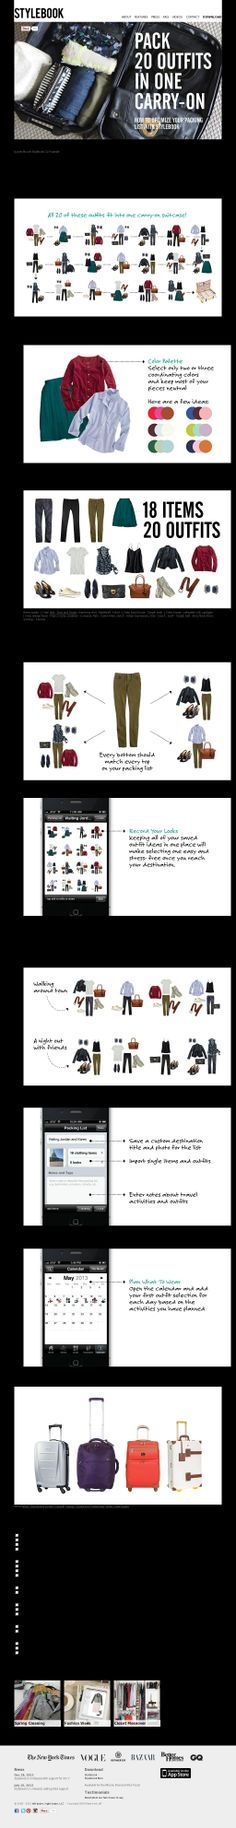 The website 'http://www.stylebookapp.com/stories/packing_list.html' courtesy of @Pinstamatic (http://pinstamatic.com)